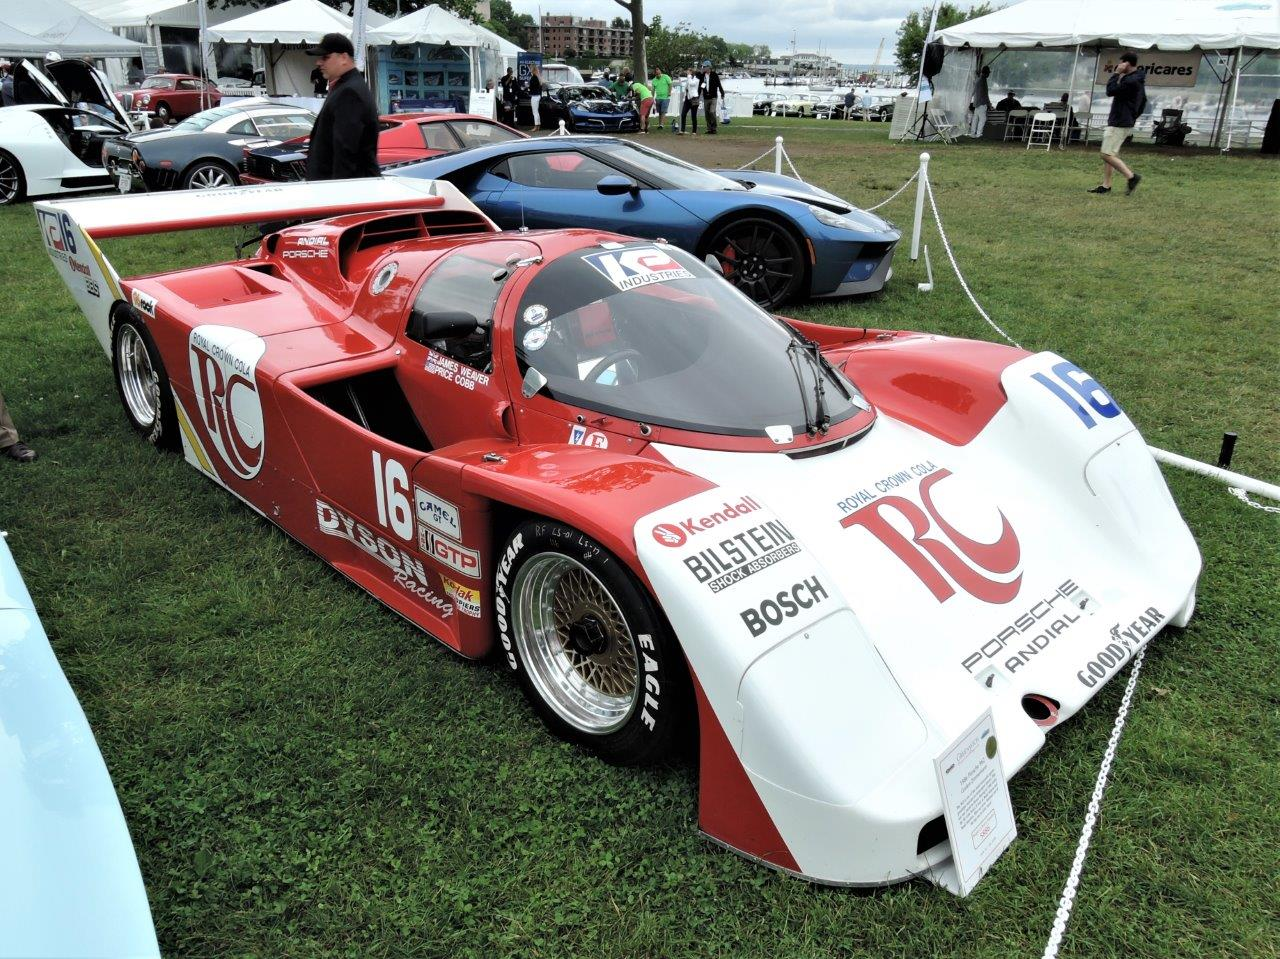 white/red RC Cola livery 1986 Porsche 962 - 2018 Greenwich Concours International